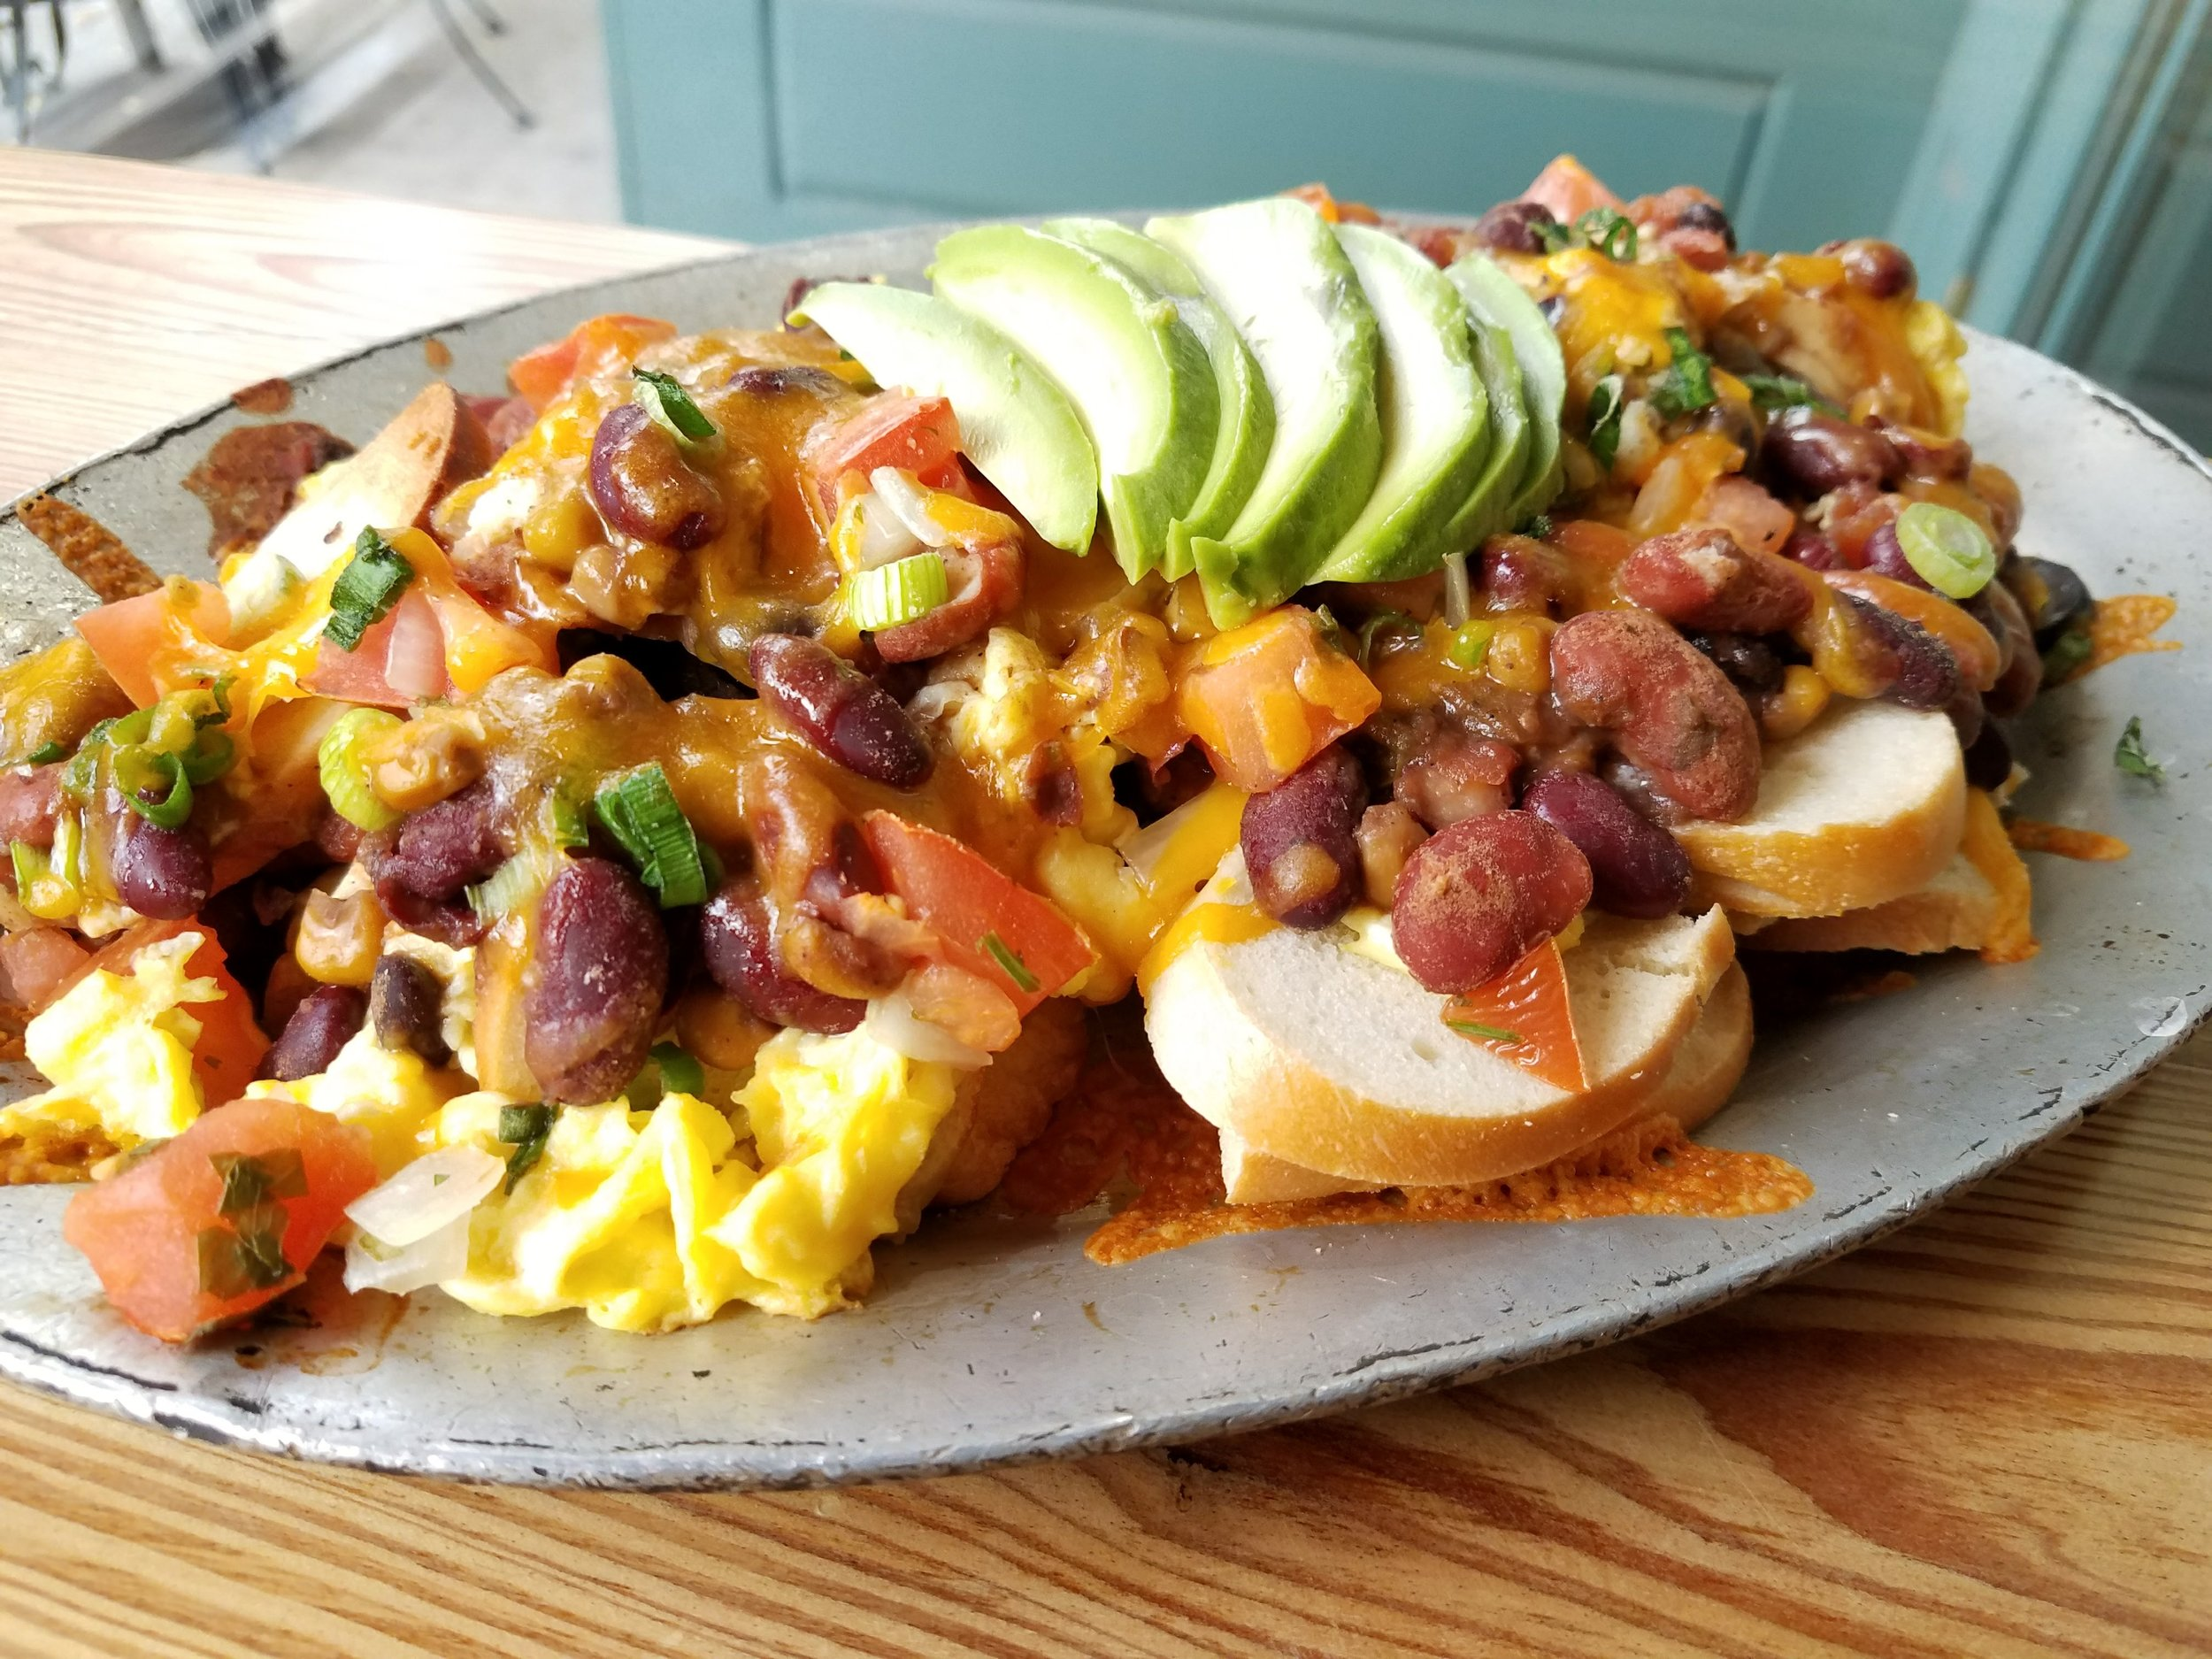 Loaded nachos! Choice of tofu or egg scramble and vegan or dairy cheddar.